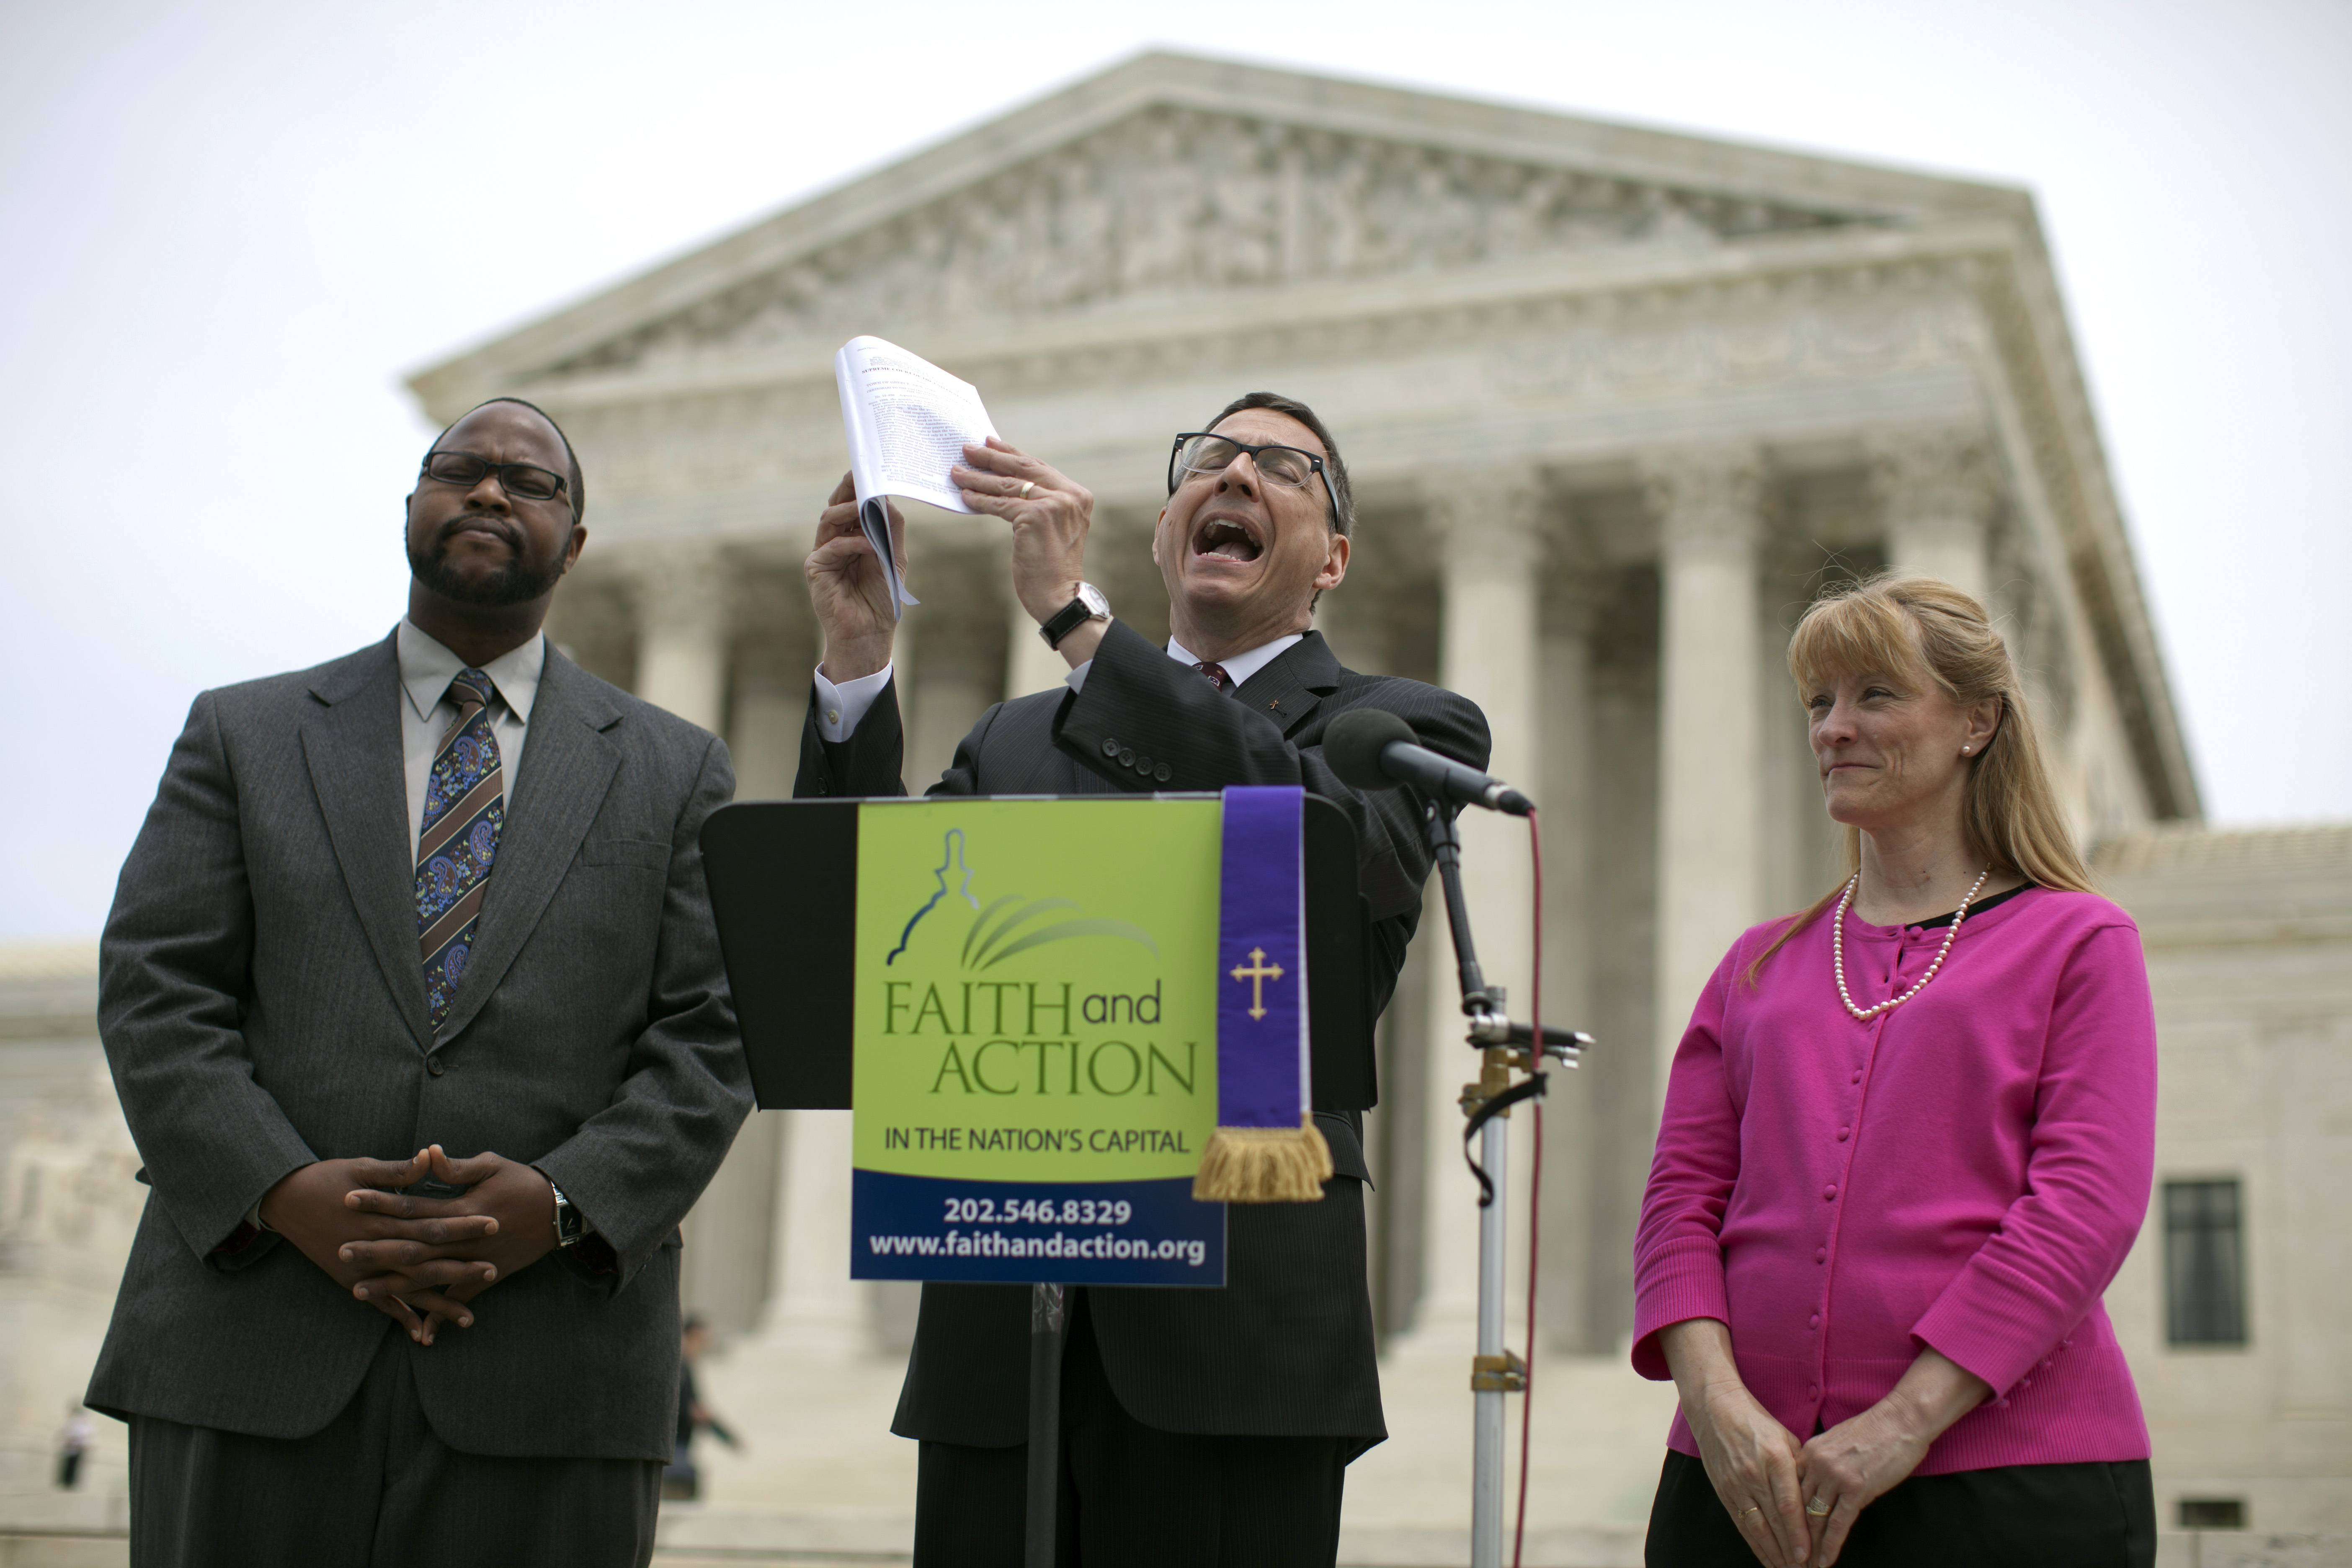 The Rev. Dr. Rob Schenck, of Faith and Action, center, speaks in front of the Supreme Court with Raymond Moore, left, and Patty Bills, both also of Faith and Action, during a news conference Monday in favor of the ruling by the court's conservative majority. A narrowly divided Supreme Court upheld decidedly Christian prayers at the start of local council meetings on Monday, declaring them in line with long national traditions though the country has grown more religiously diverse.